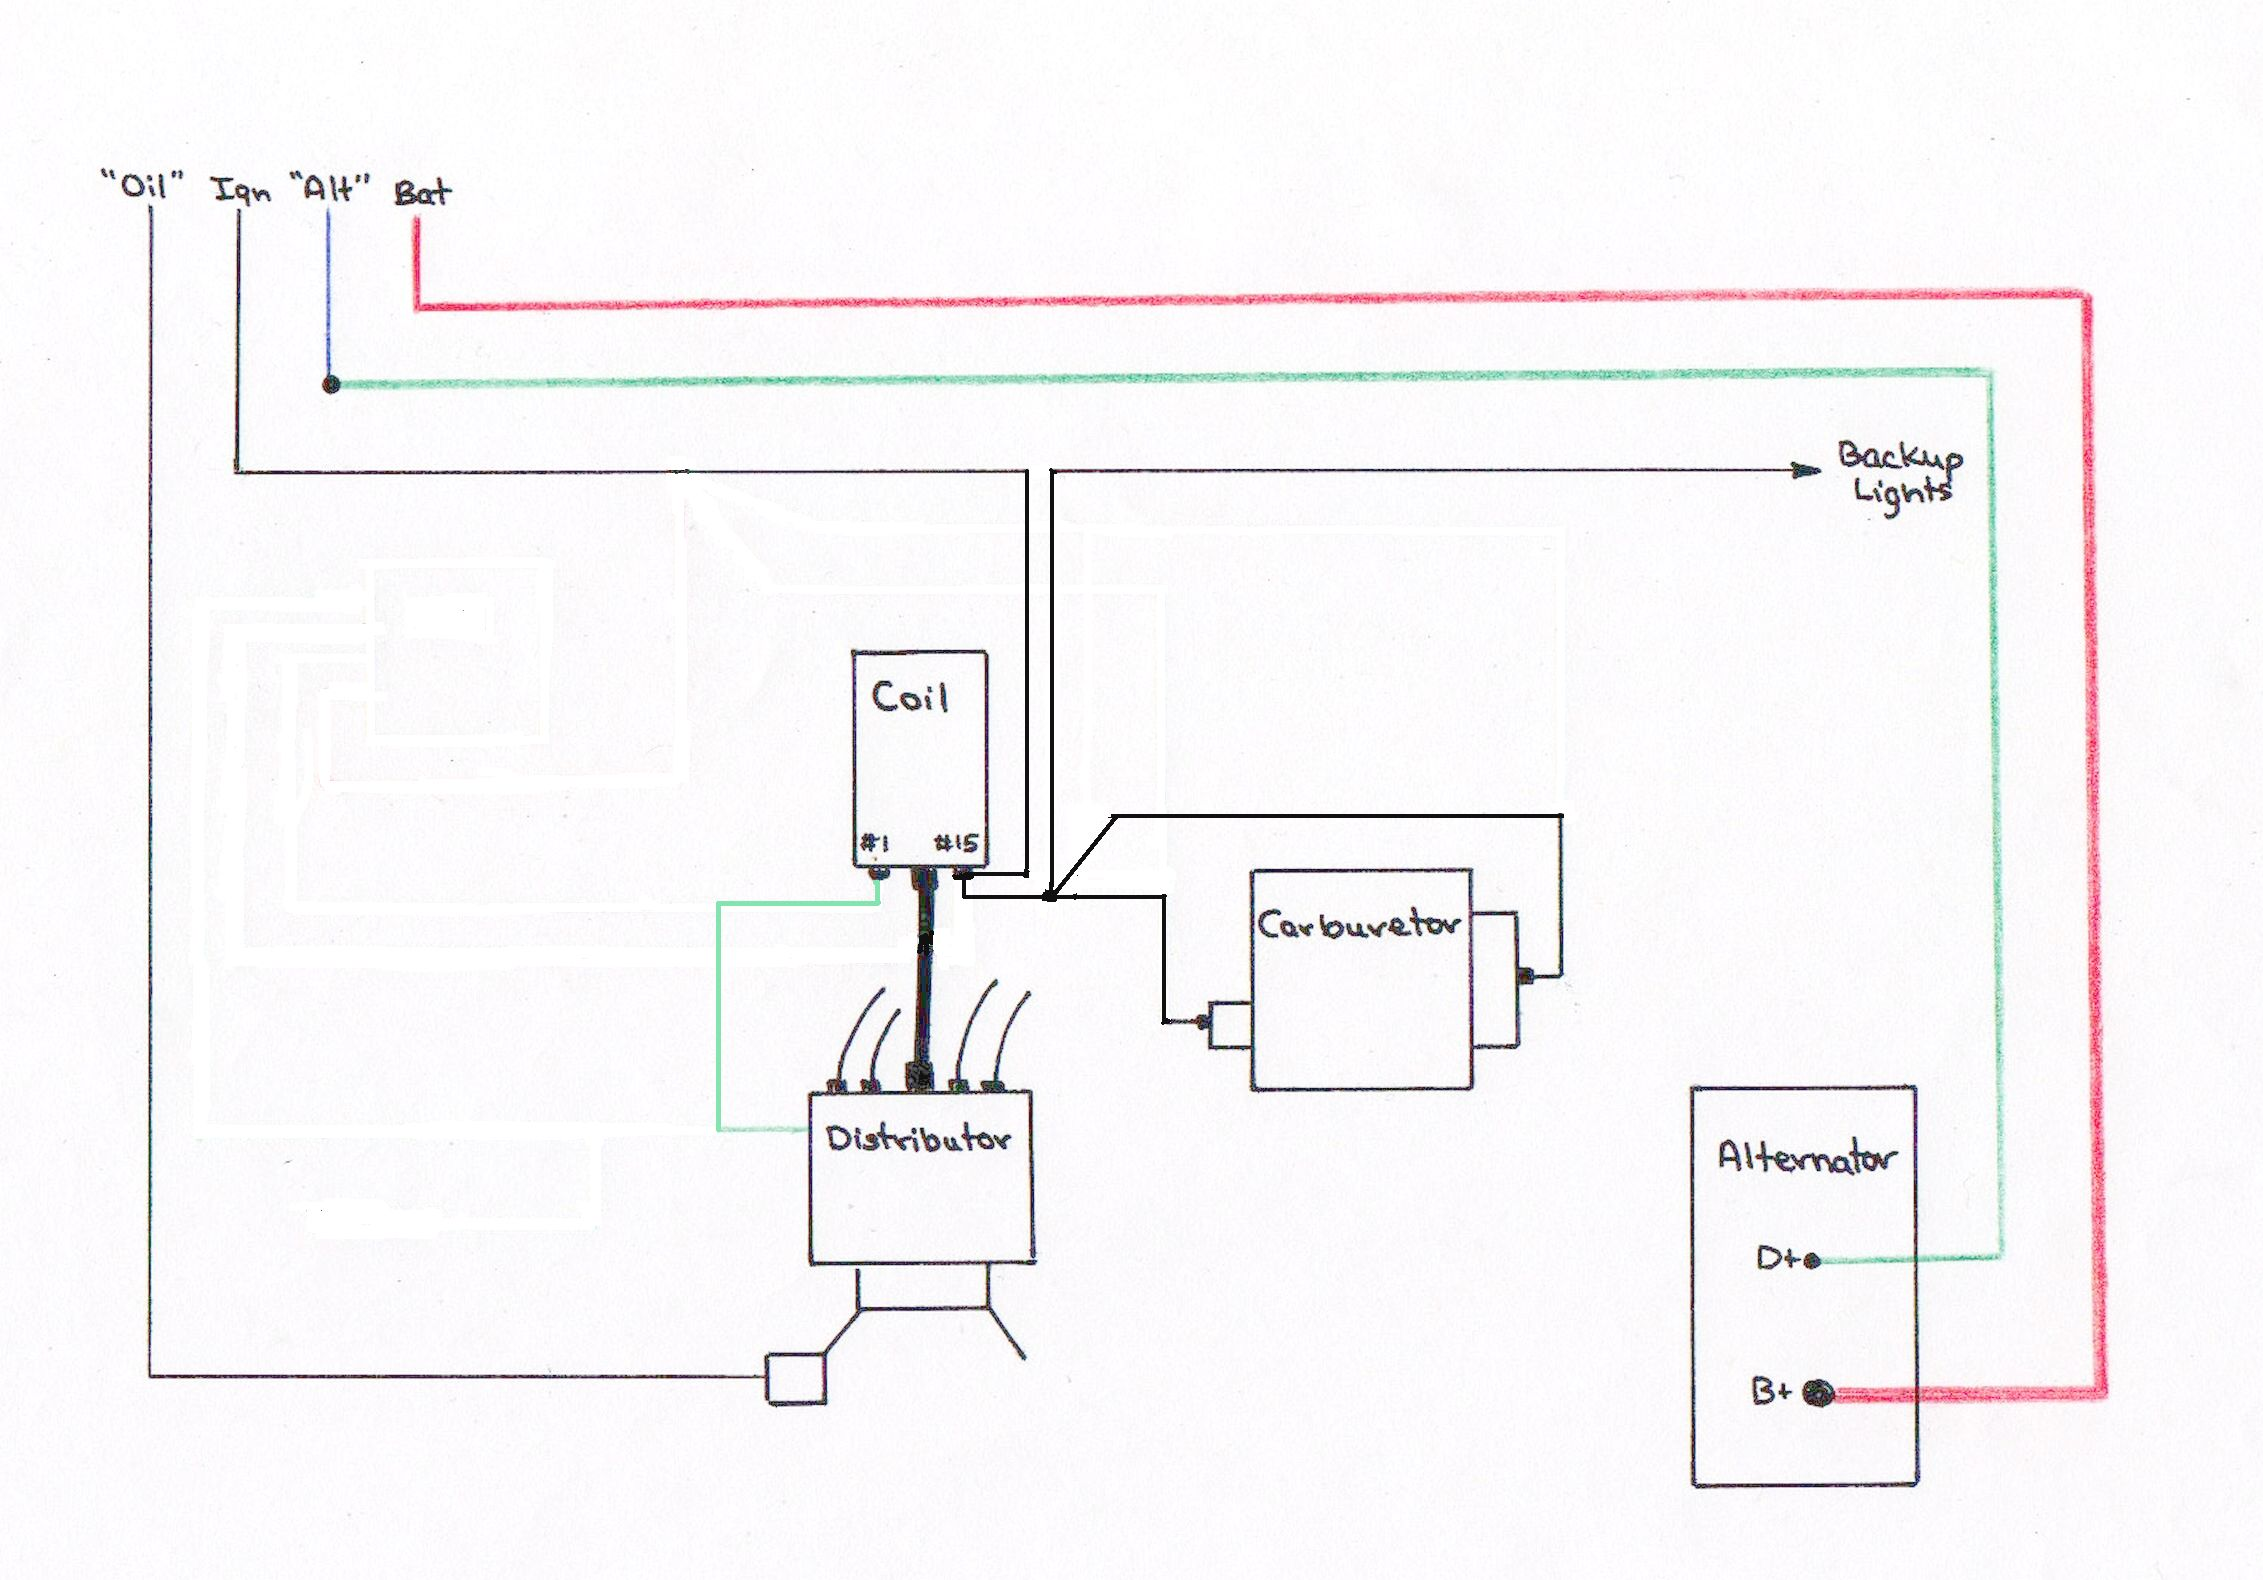 handdrawn_schematic alternator wiring valeo alternator regulator wiring diagram at cos-gaming.co